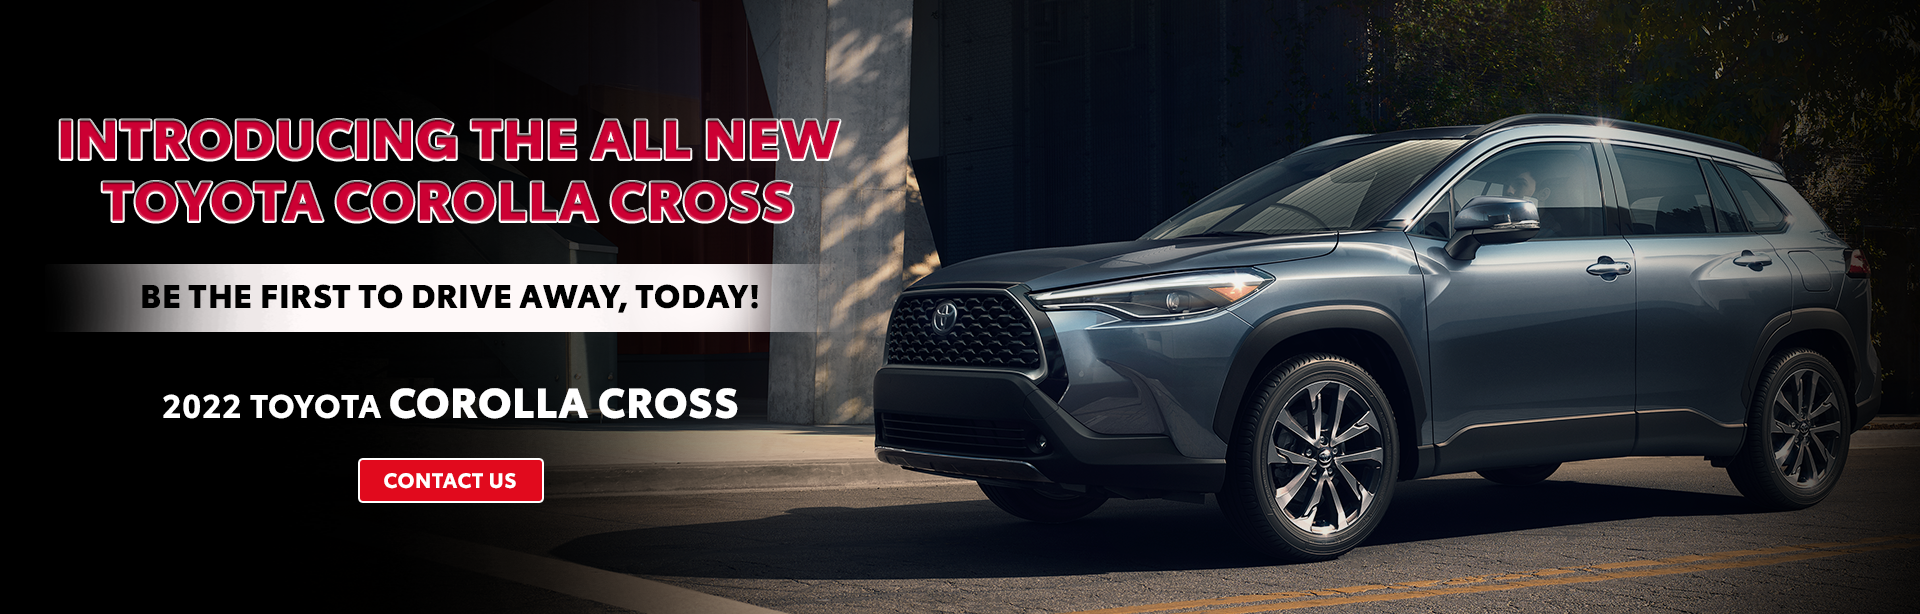 Introducing The All New Toyota Corolla Cross | Be The Frist To Drive Away, Today! | 2022 Toyota Corolla Cross